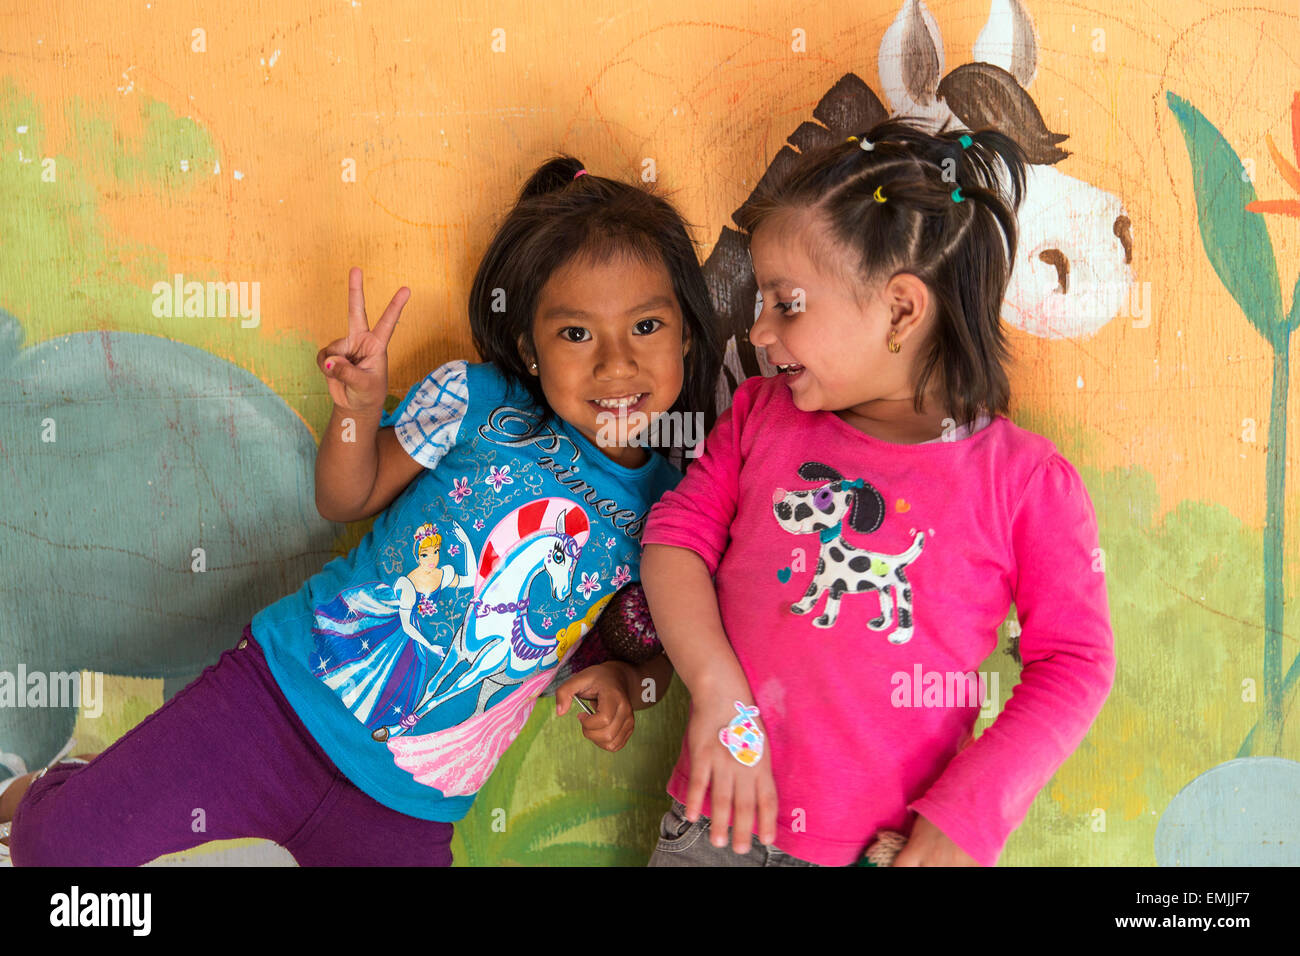 Guatemala, portrait of two young children in a nutrition center recovering from malnutrition - Stock Image